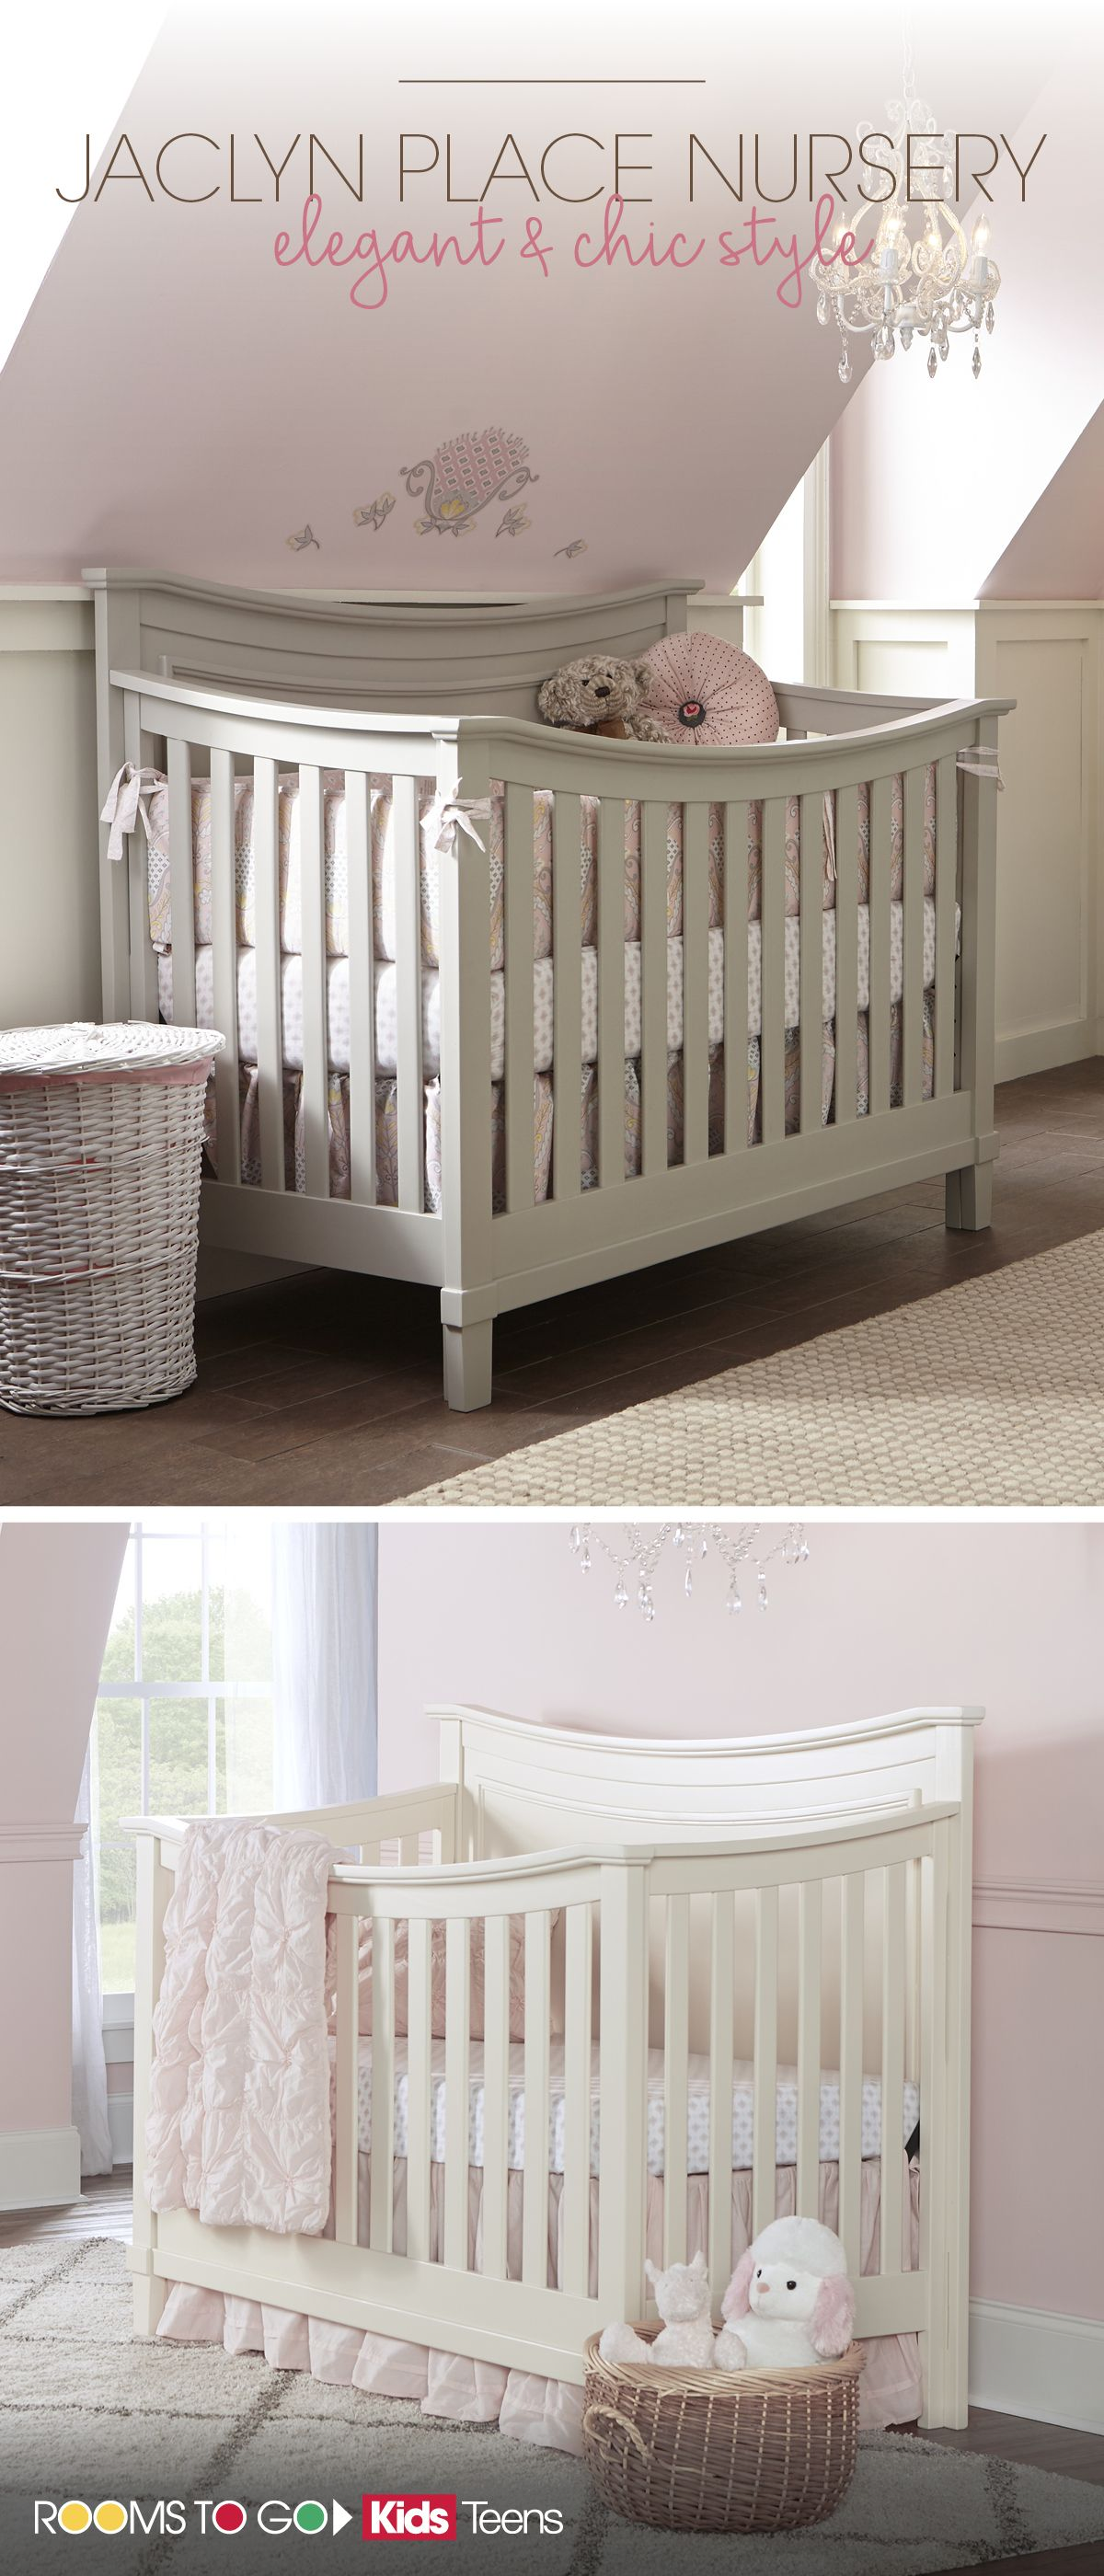 find a modern elegant and chic girls nursery for your baby at